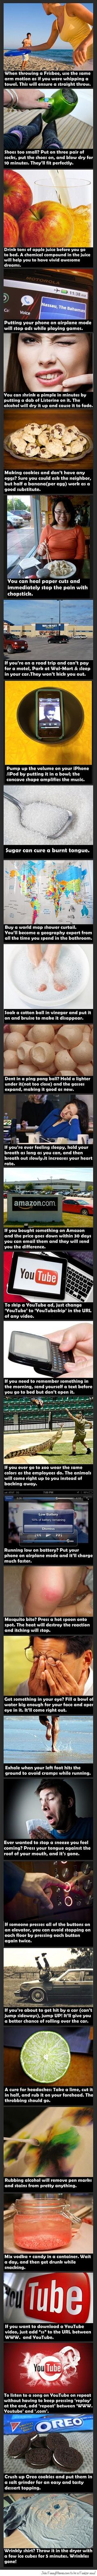 Life hacks from the internet